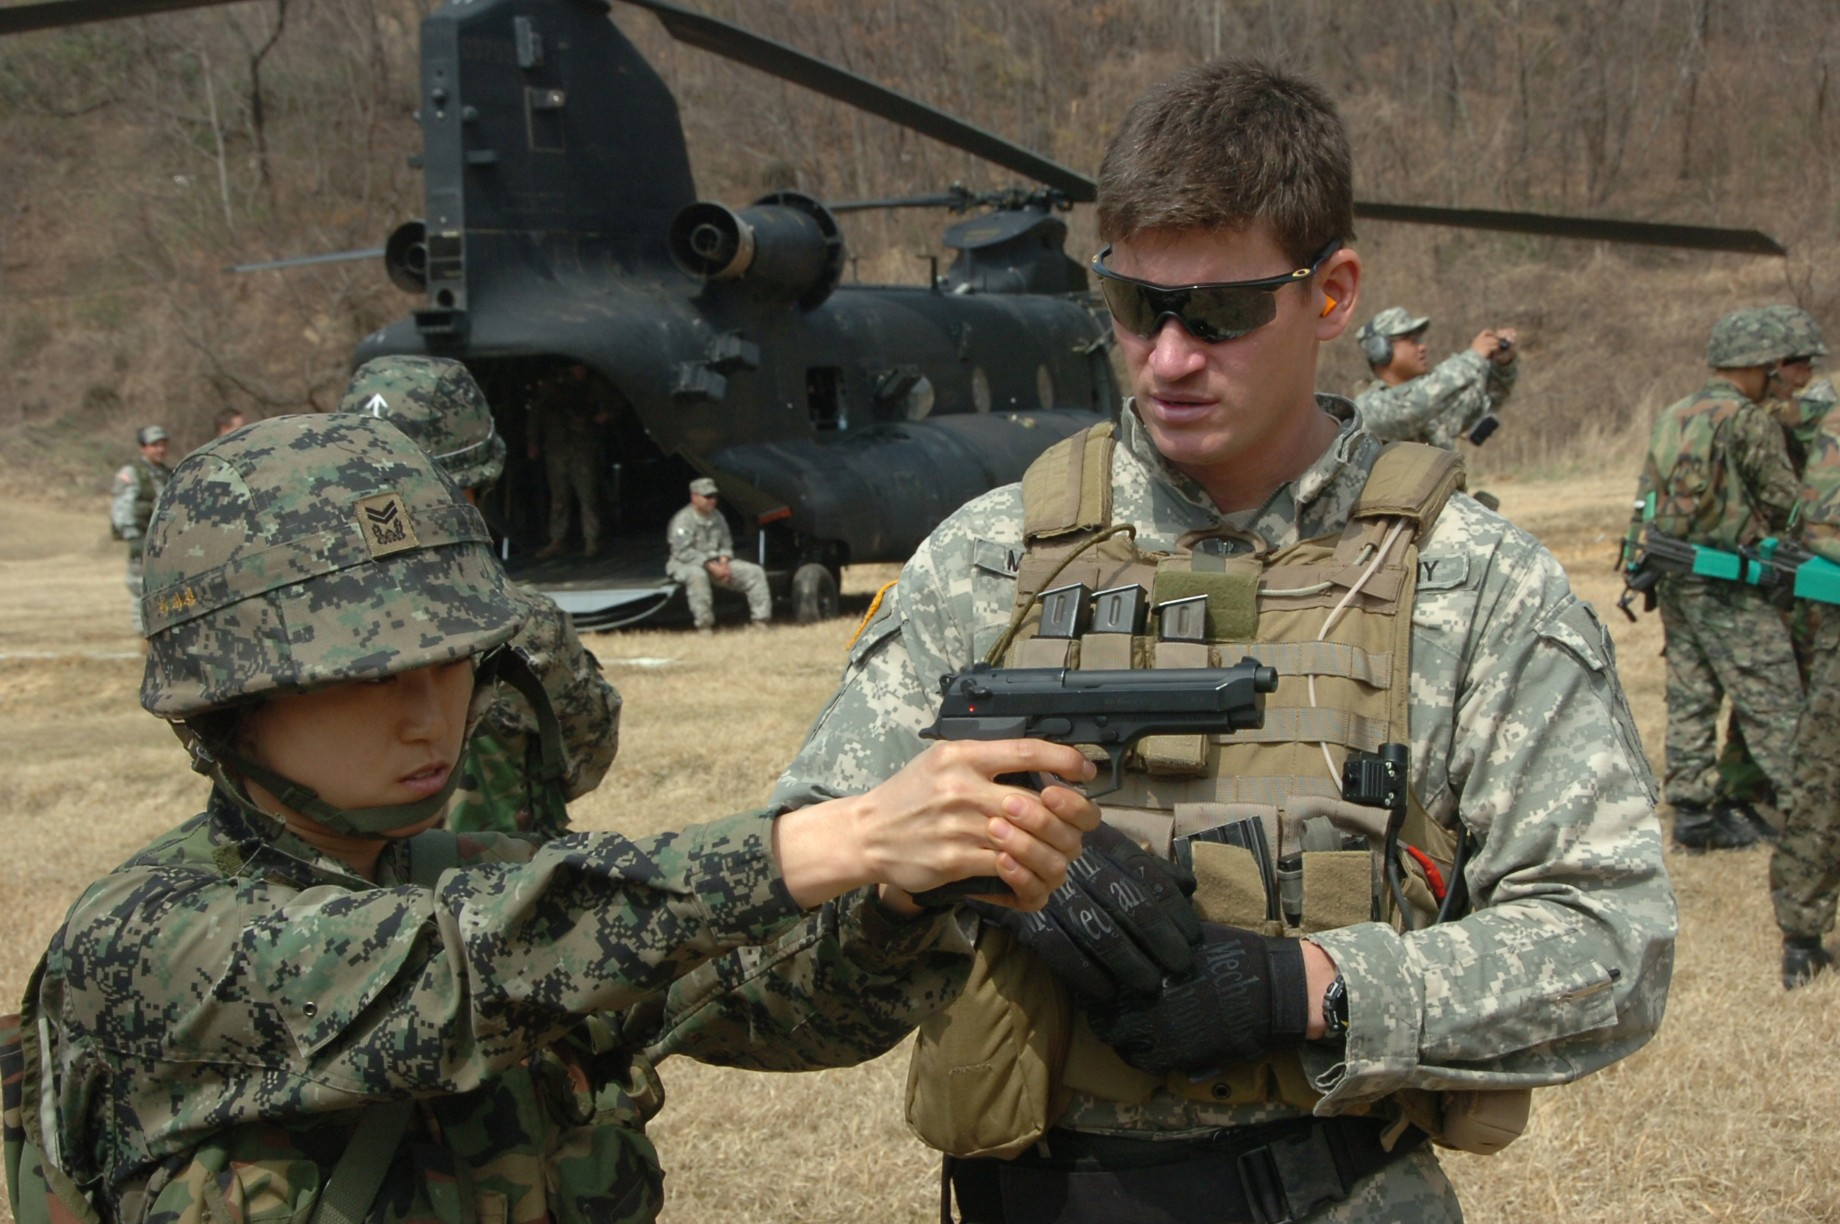 Special Forces - Shooters and thinkers | Article | The ...